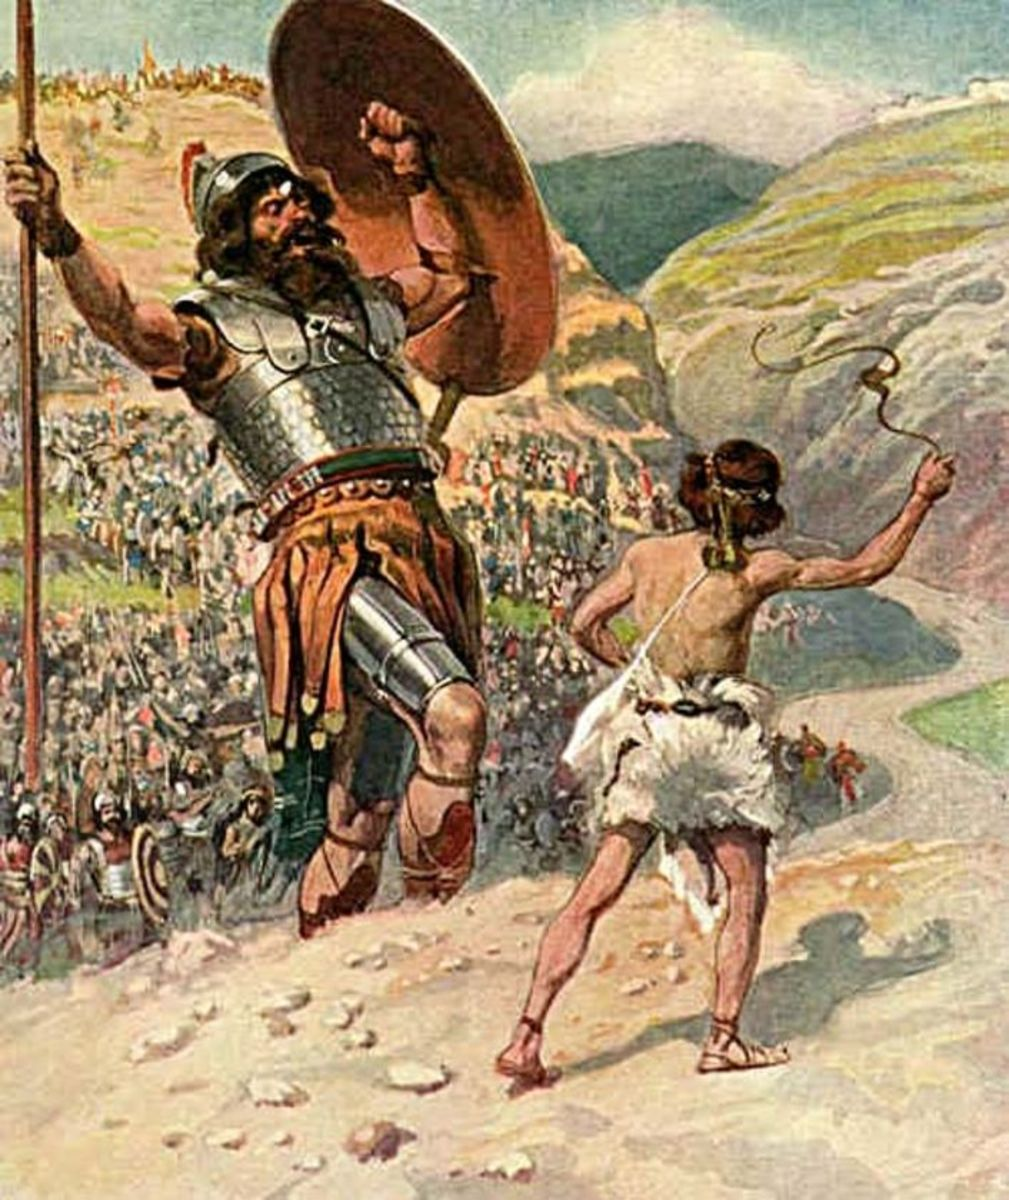 Poem: David and Goliath